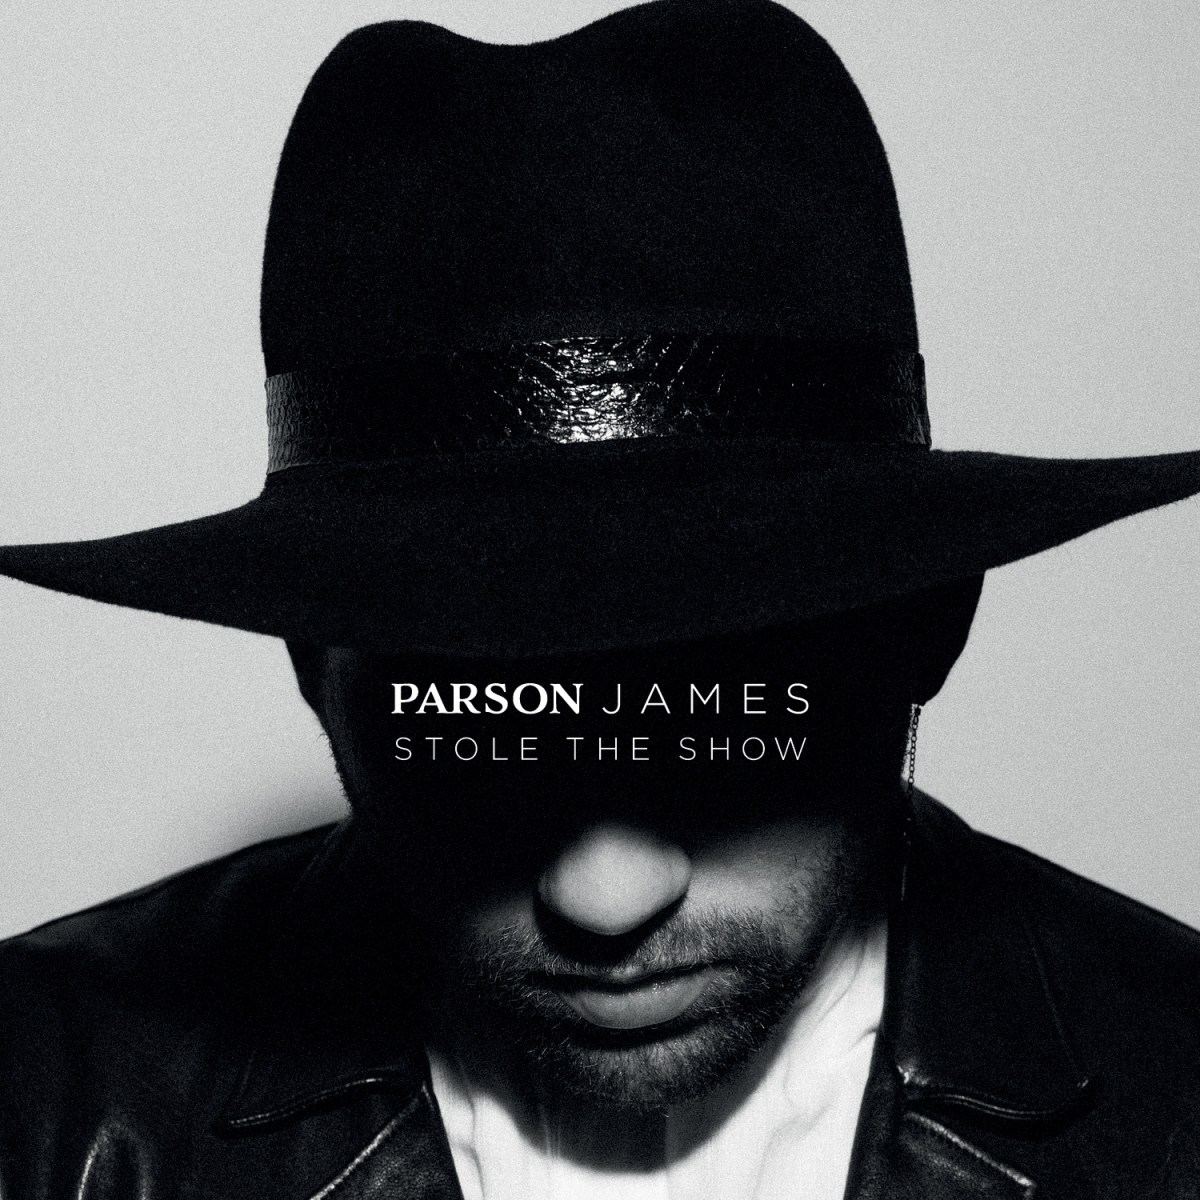 Listen To This: Parson James - Stole The Show (The Original)